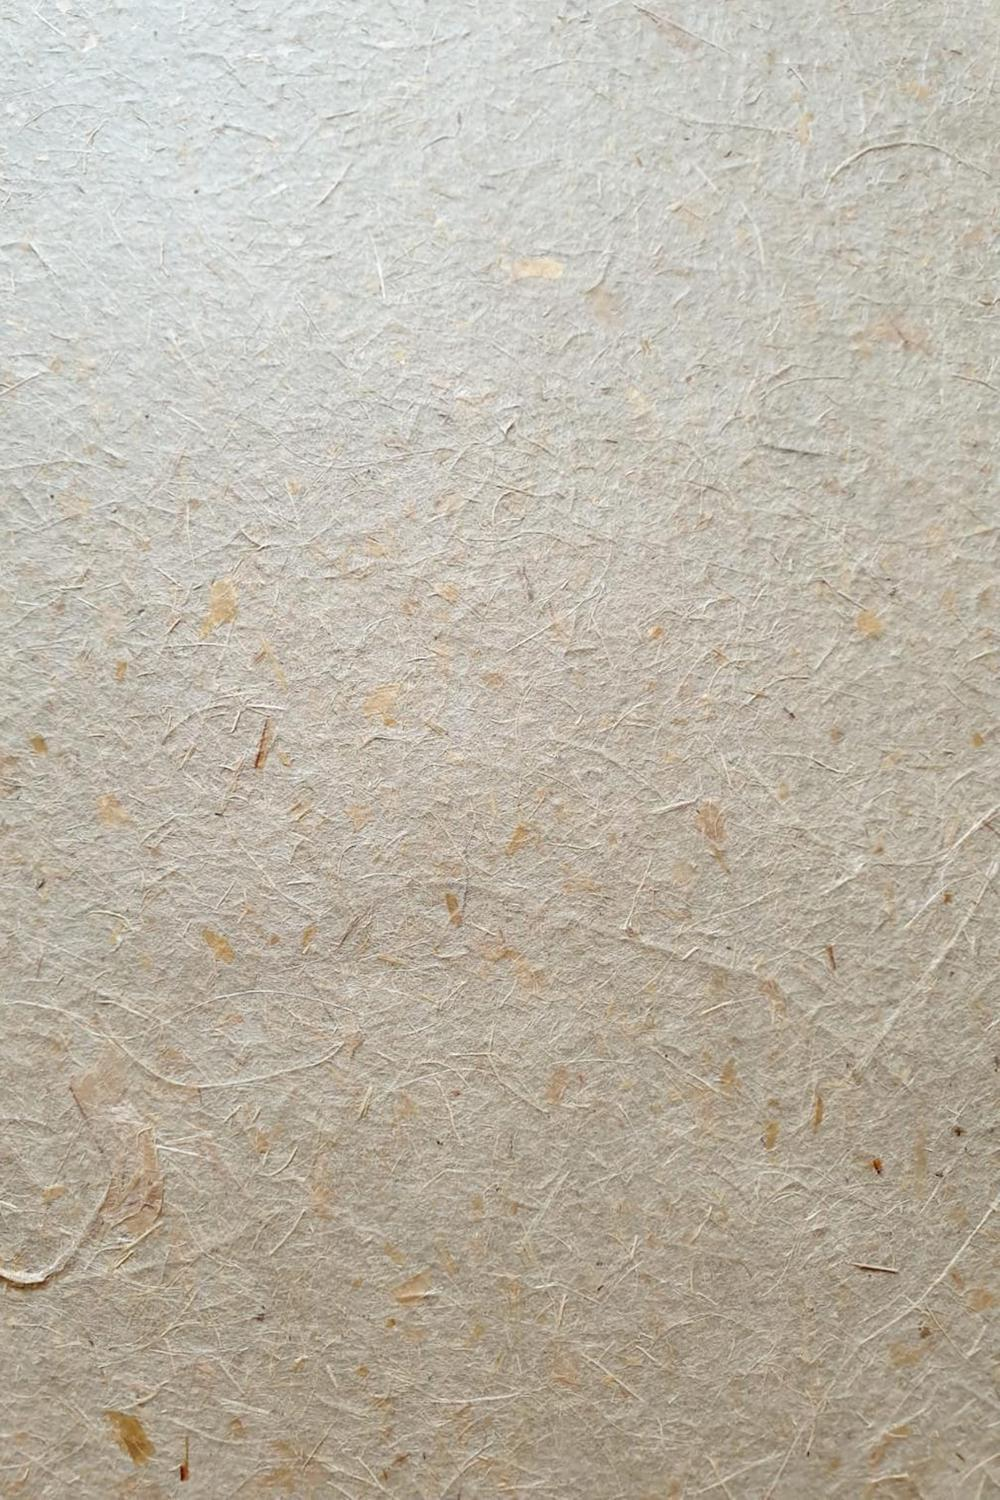 Handmade paper sheet made of New Zealand flax fibers